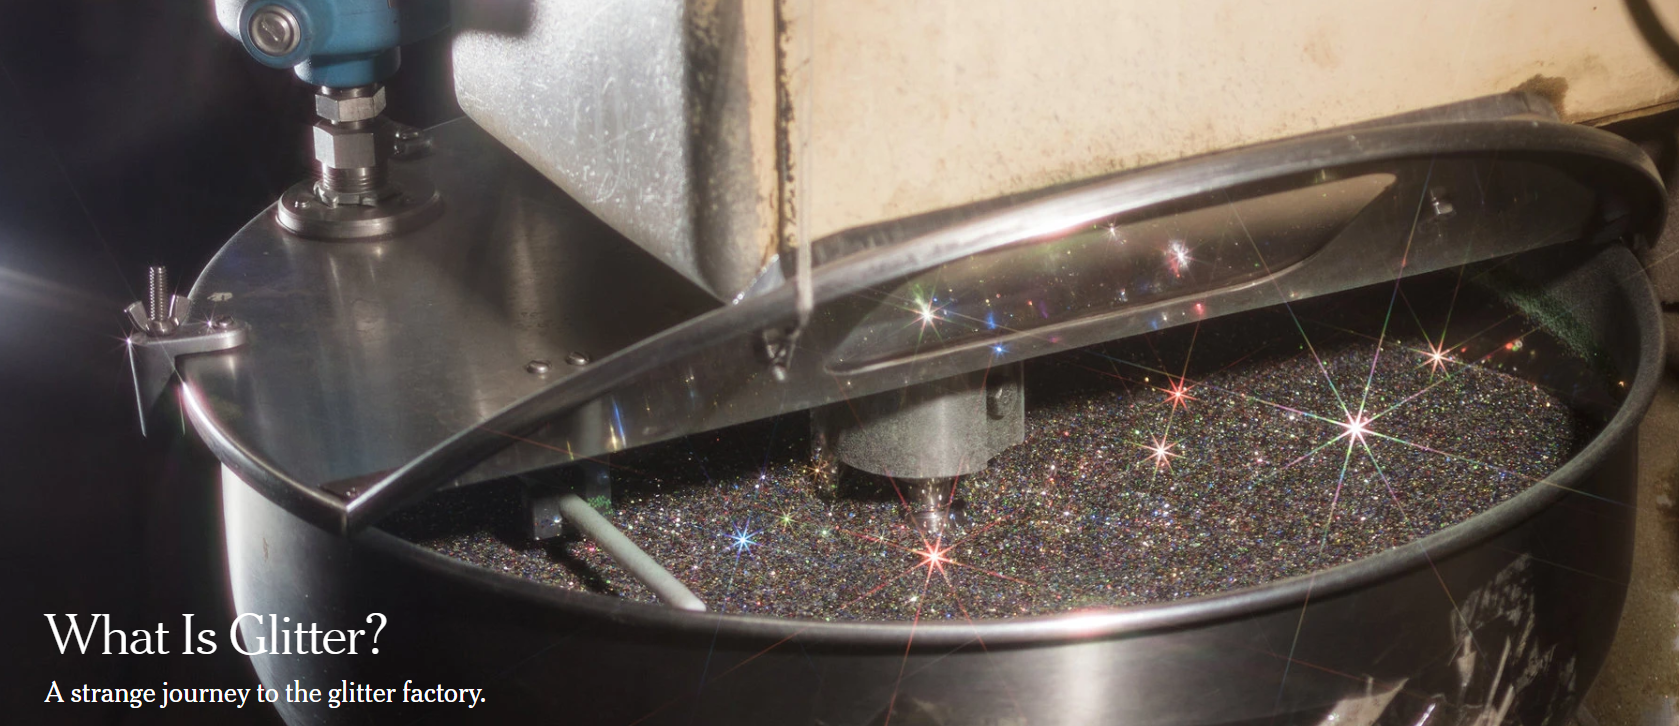 Ah, the shimmer of aluminum metalized polyethylene terephthalate. [Photo: Chris Maggio for The New York Times]